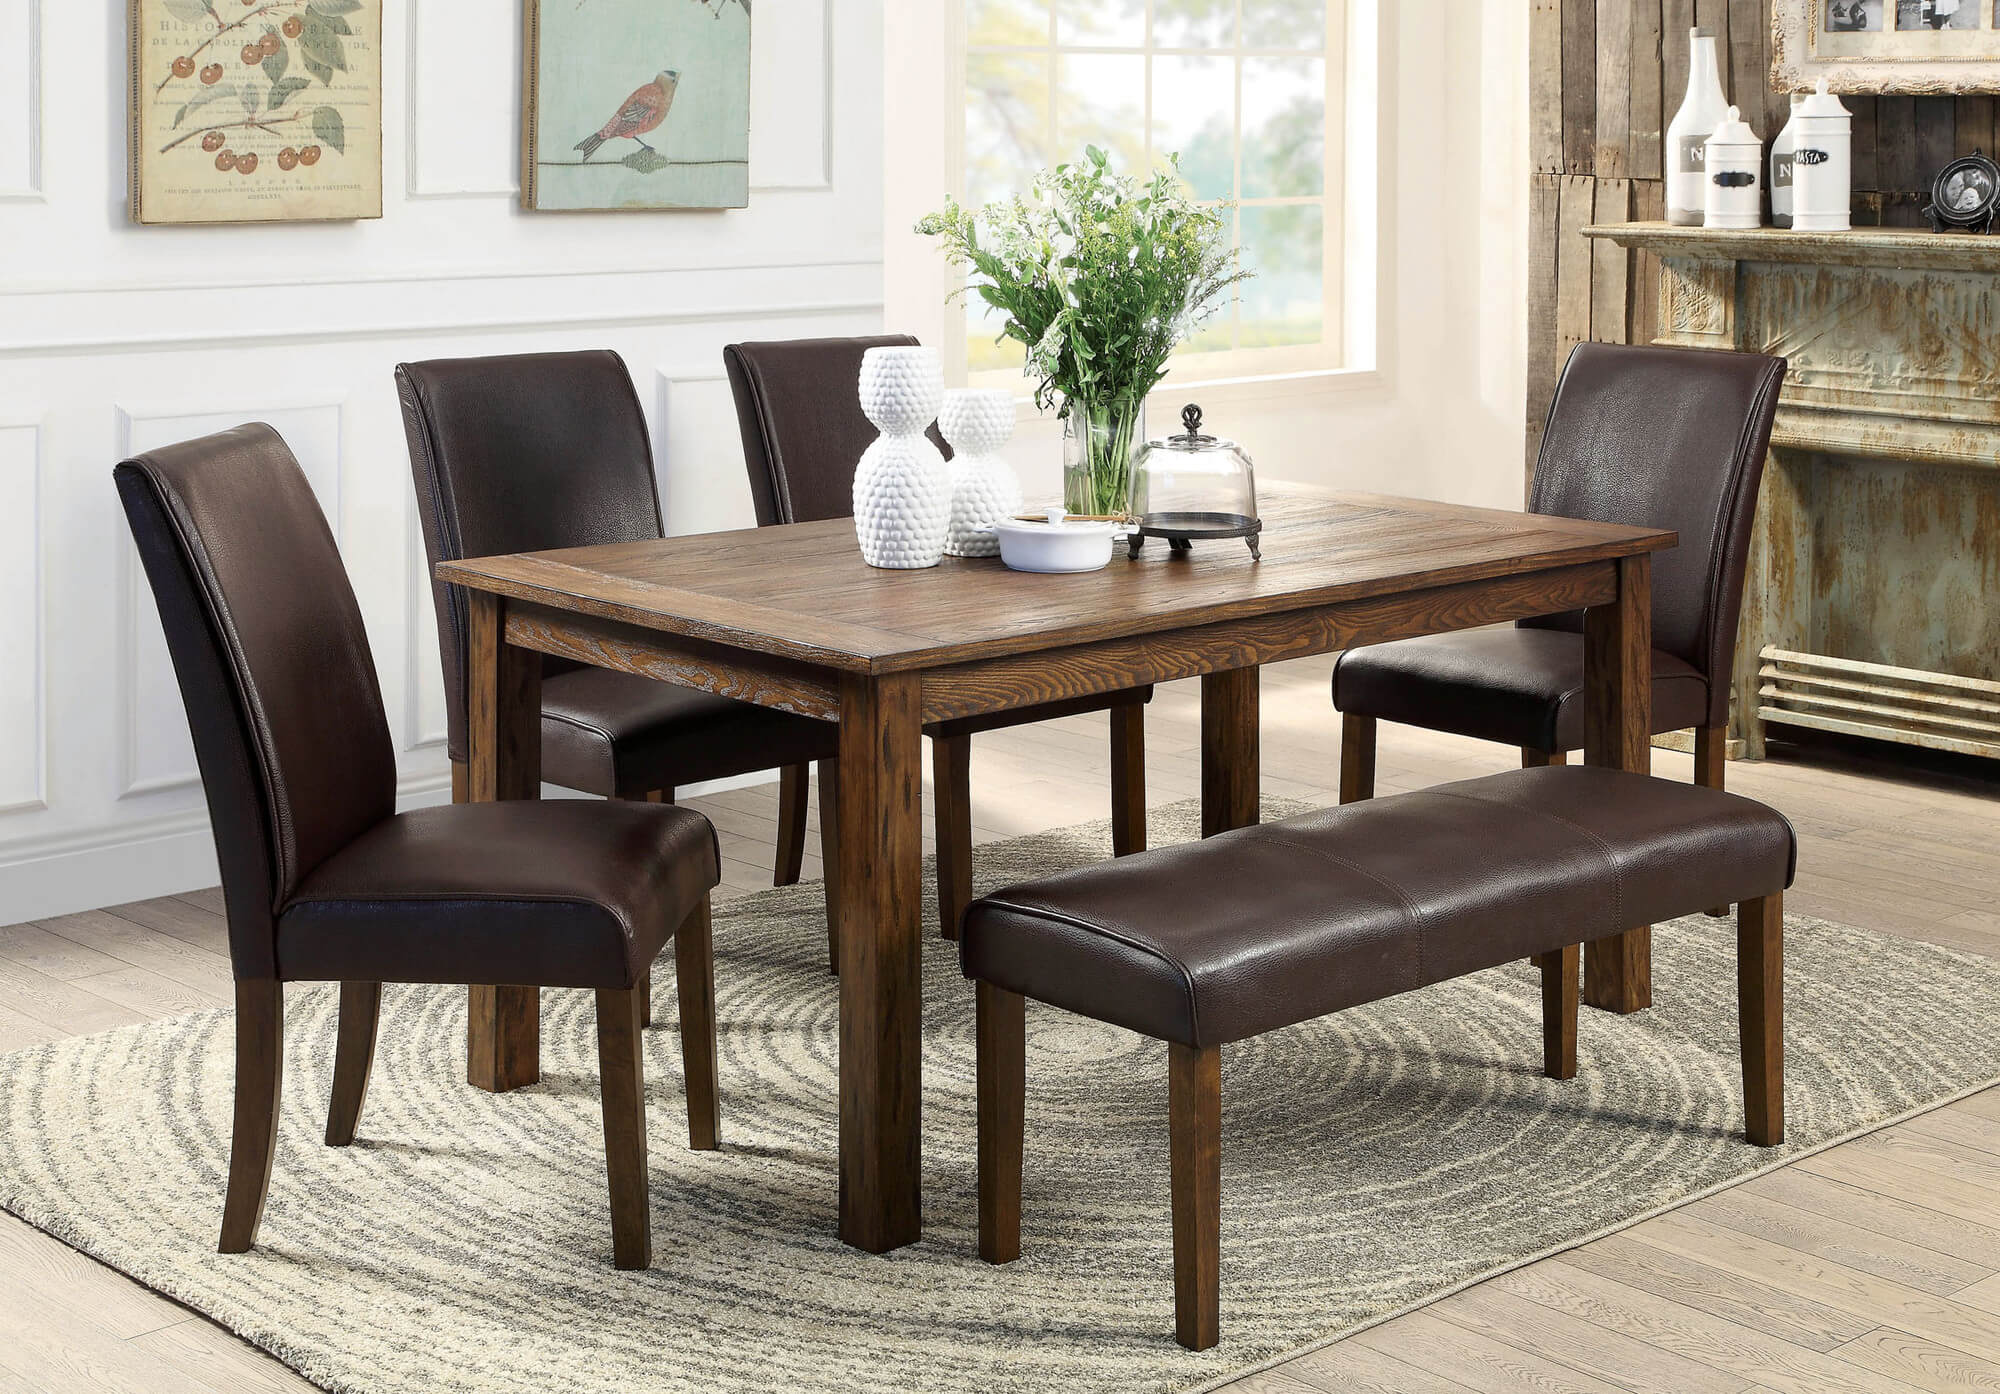 heres a rustic rectangle dining table with fully cushioned chairs and bench this look works: small dining tables sets